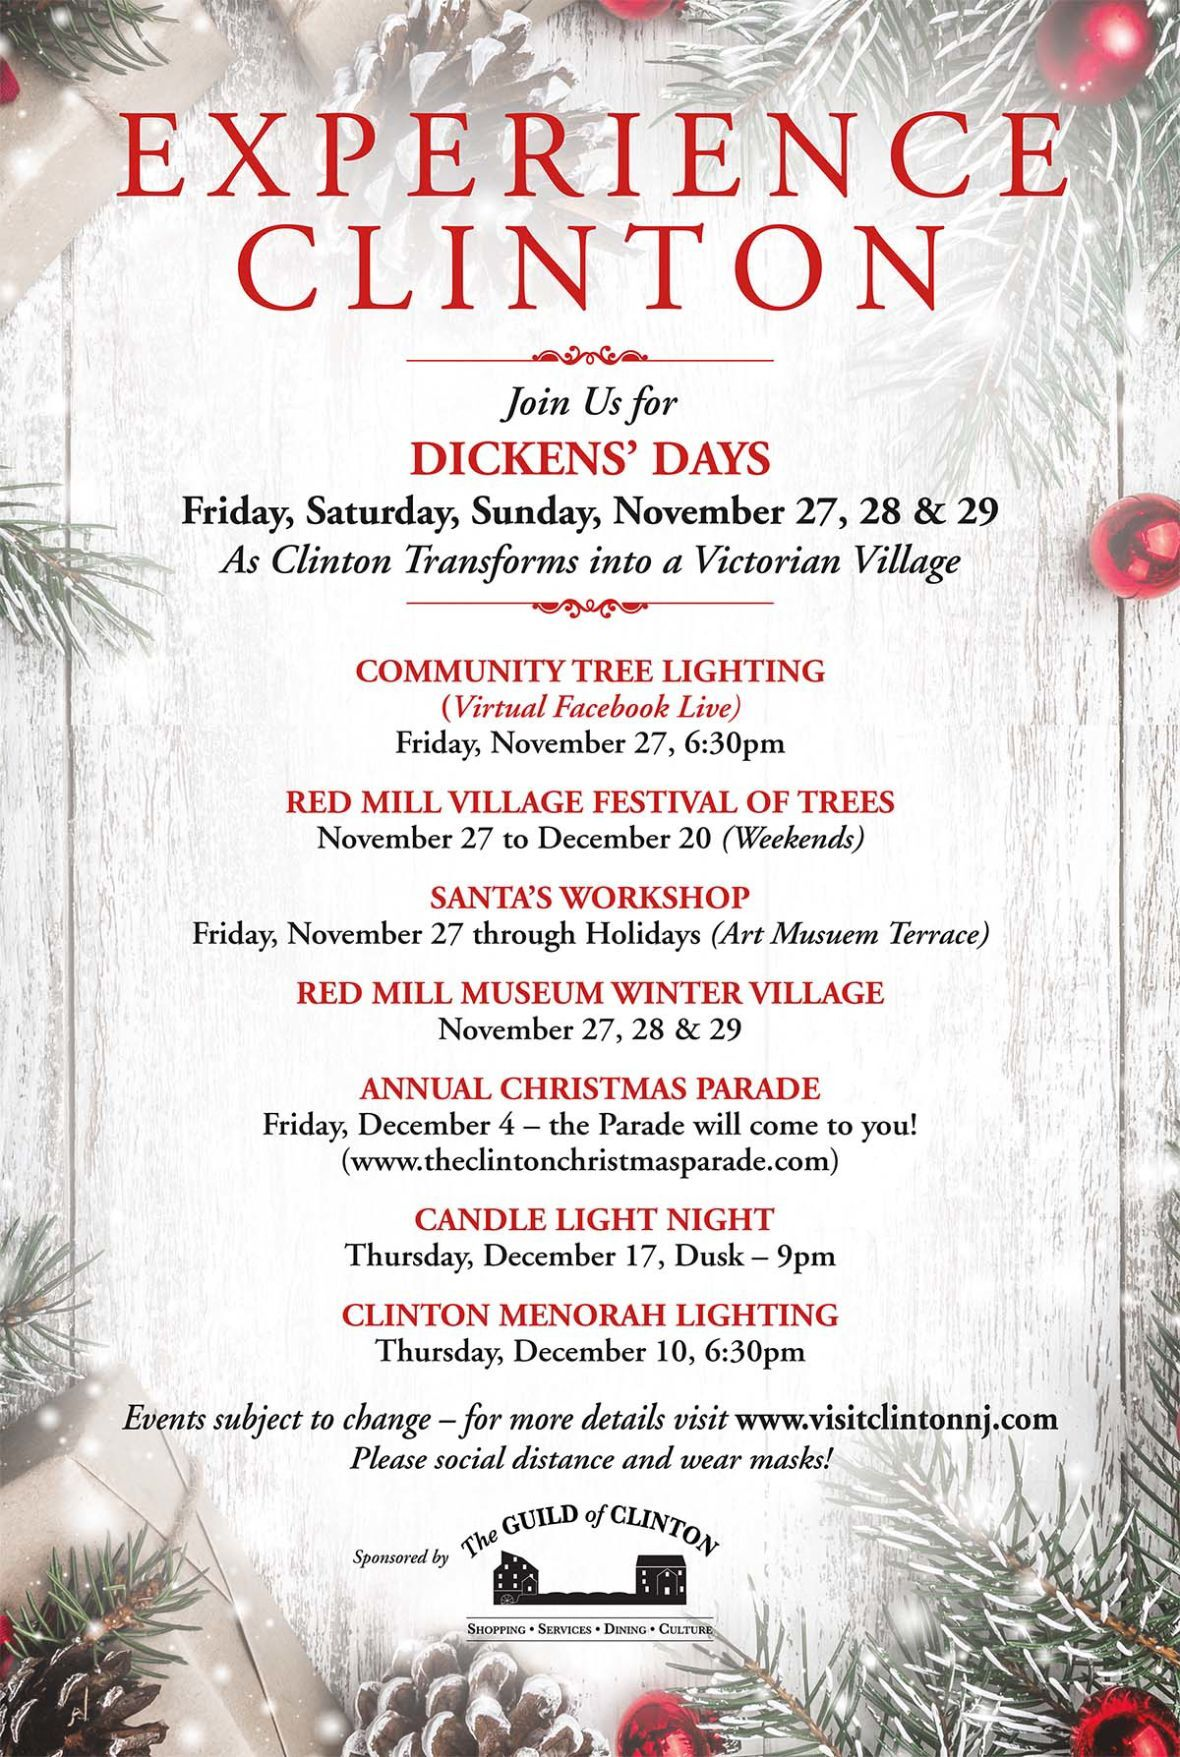 Clinton Guild announces Dickens Days, Christmas Parade and more holiday events